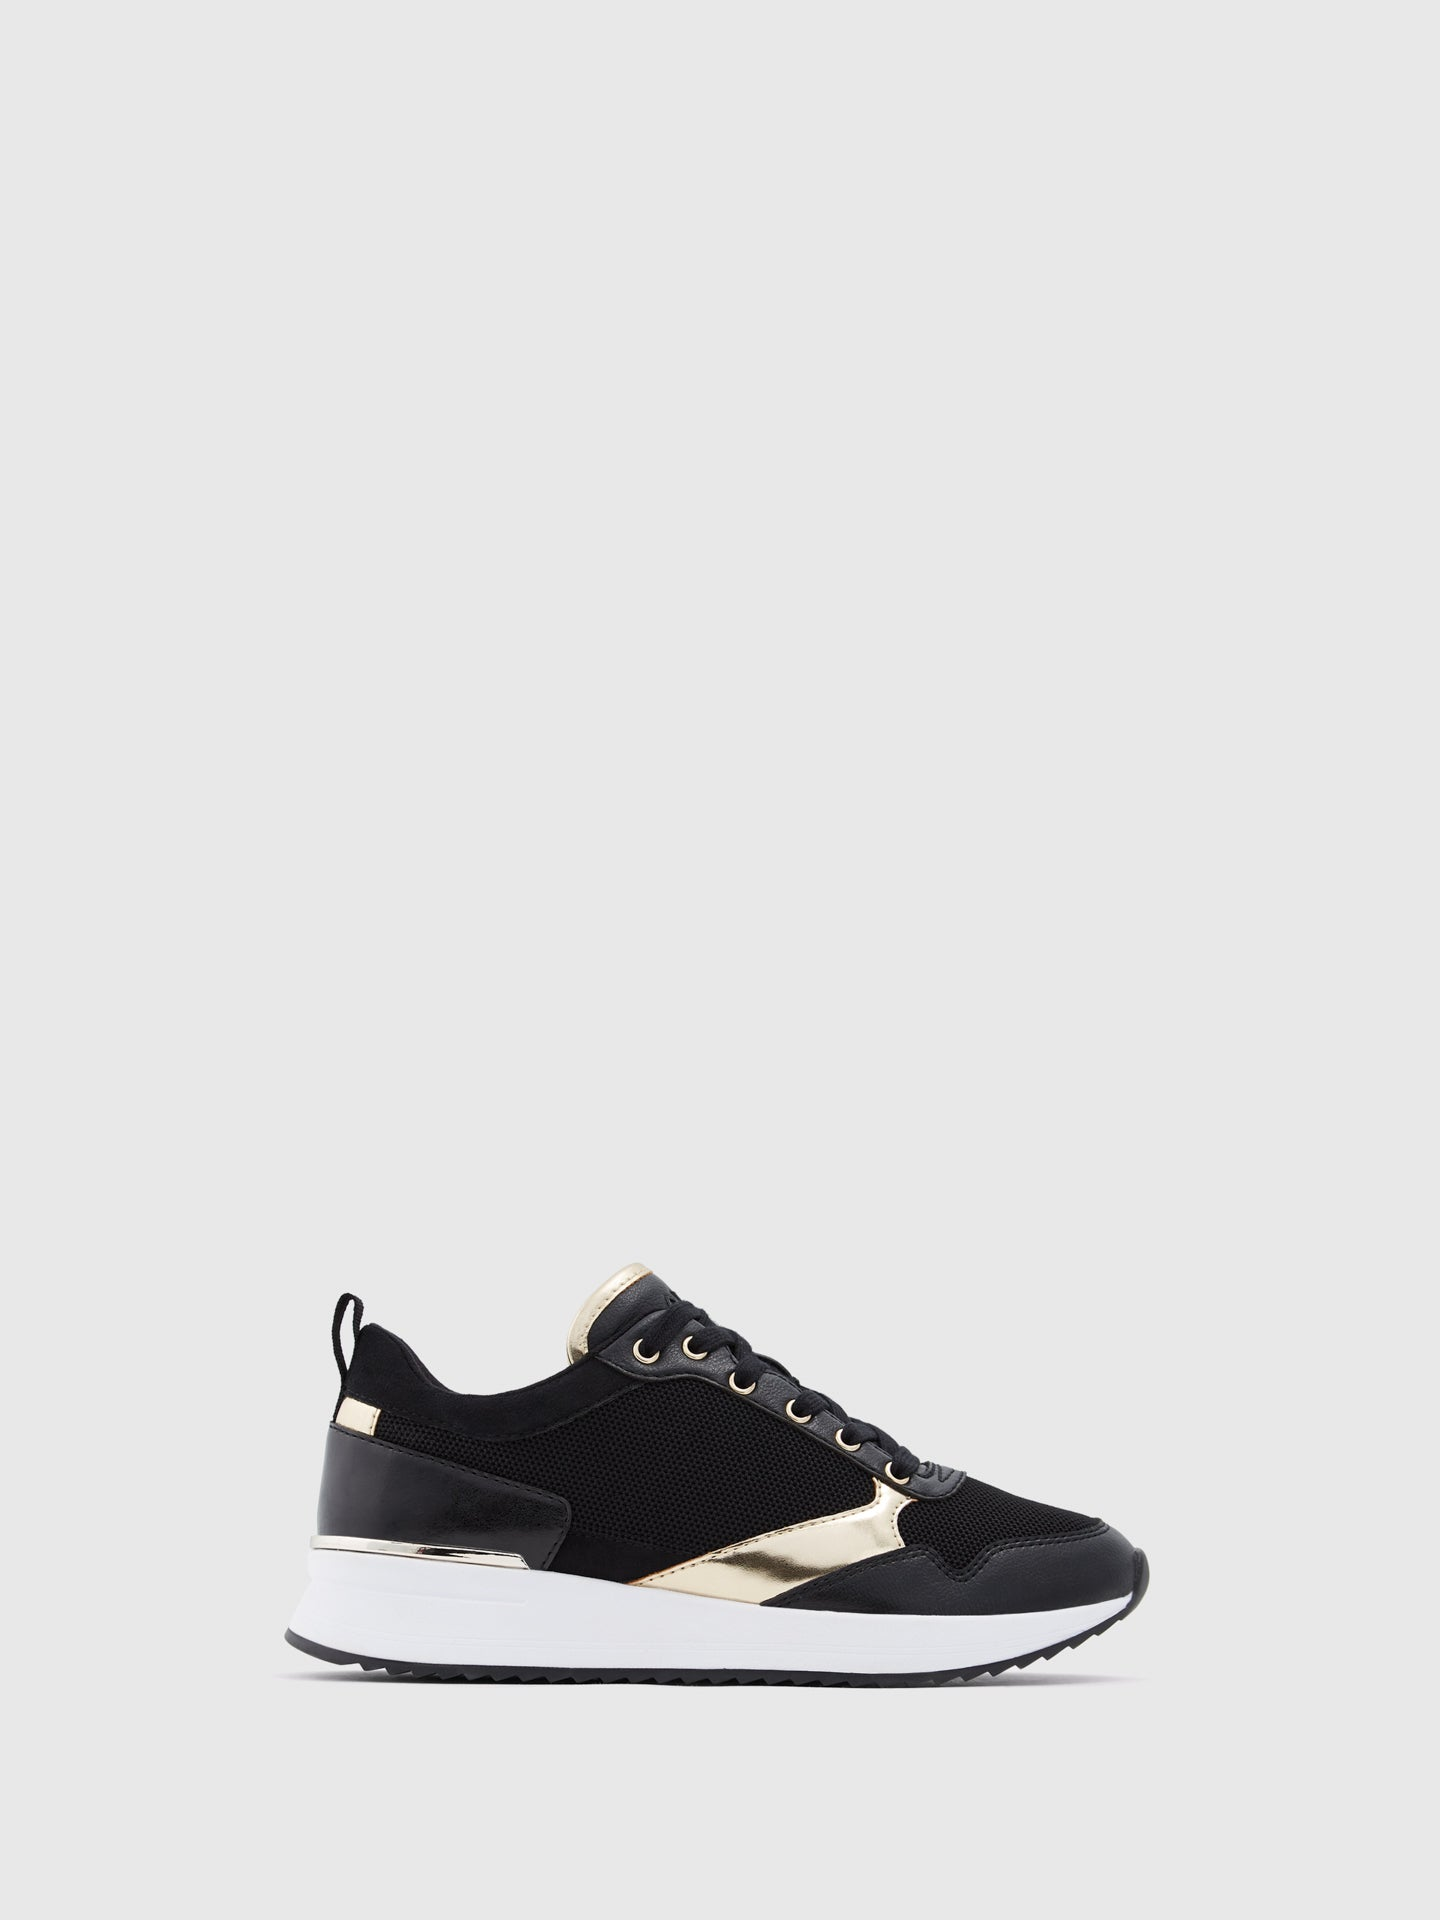 Aldo Black Lace-up Trainers